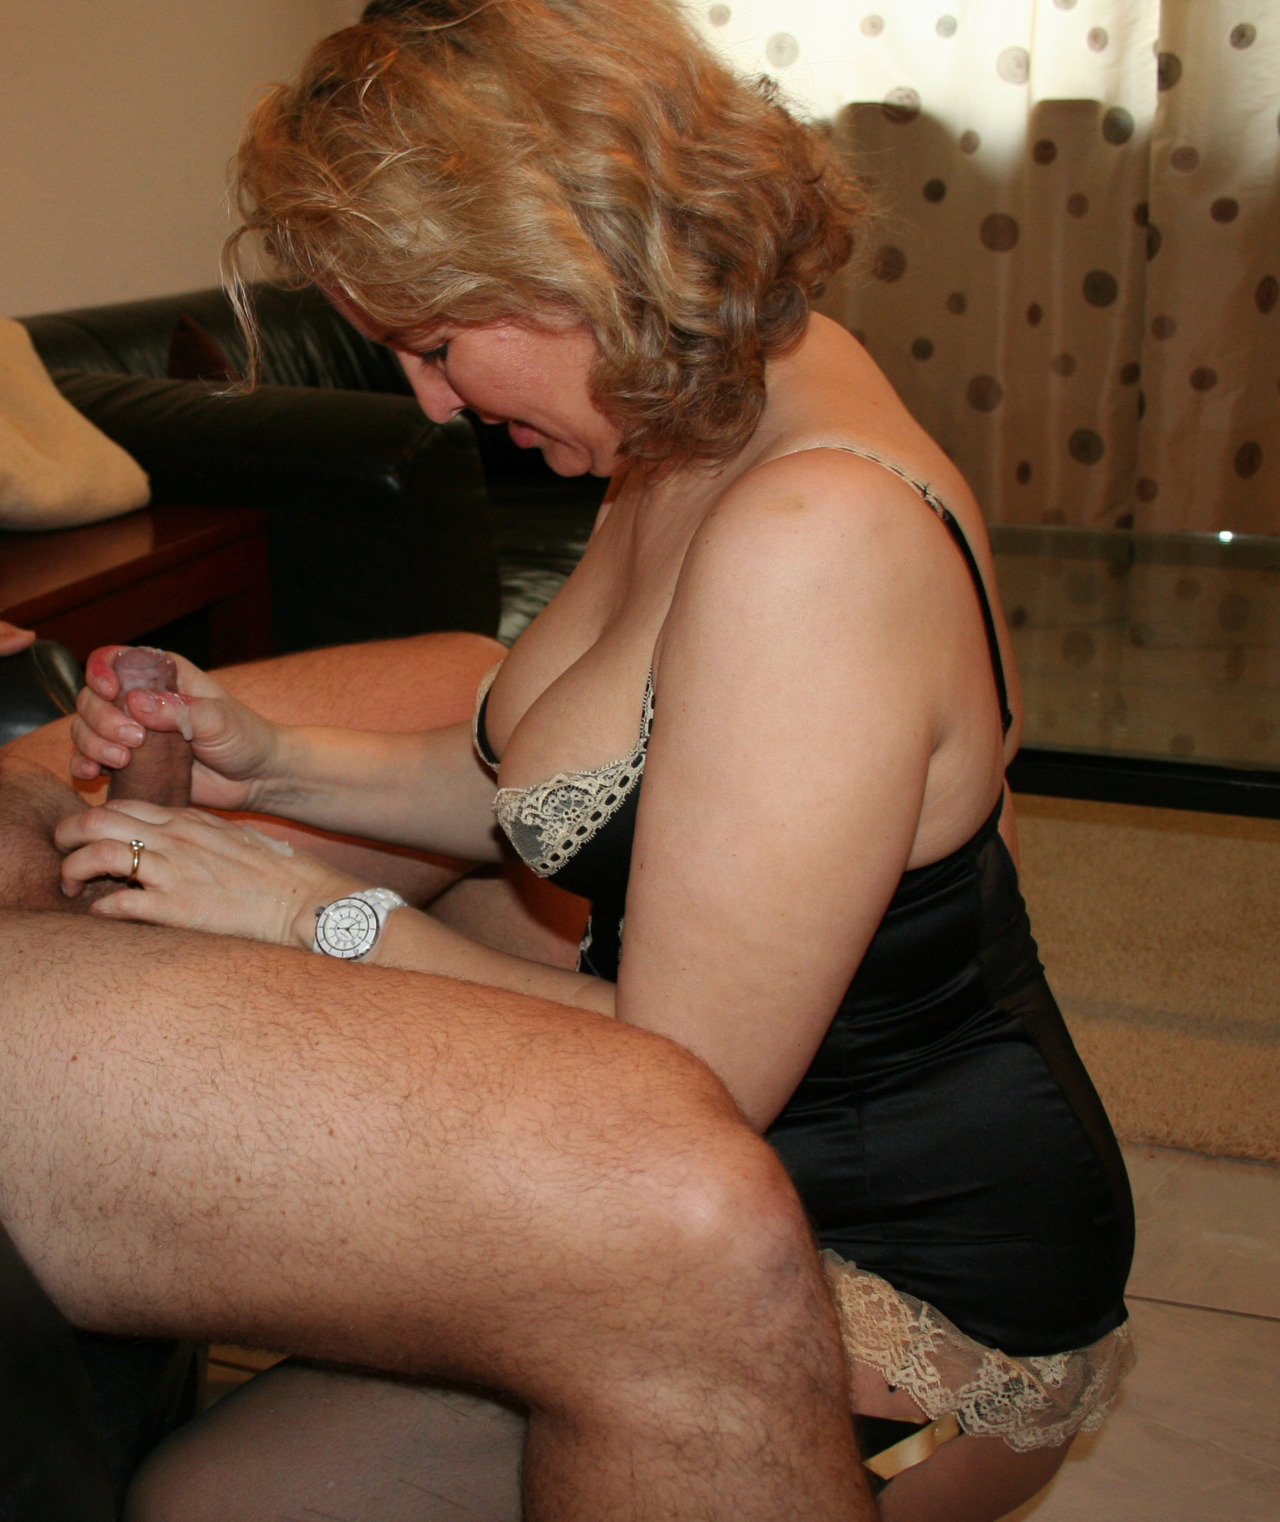 Hot granny blowjobs pics